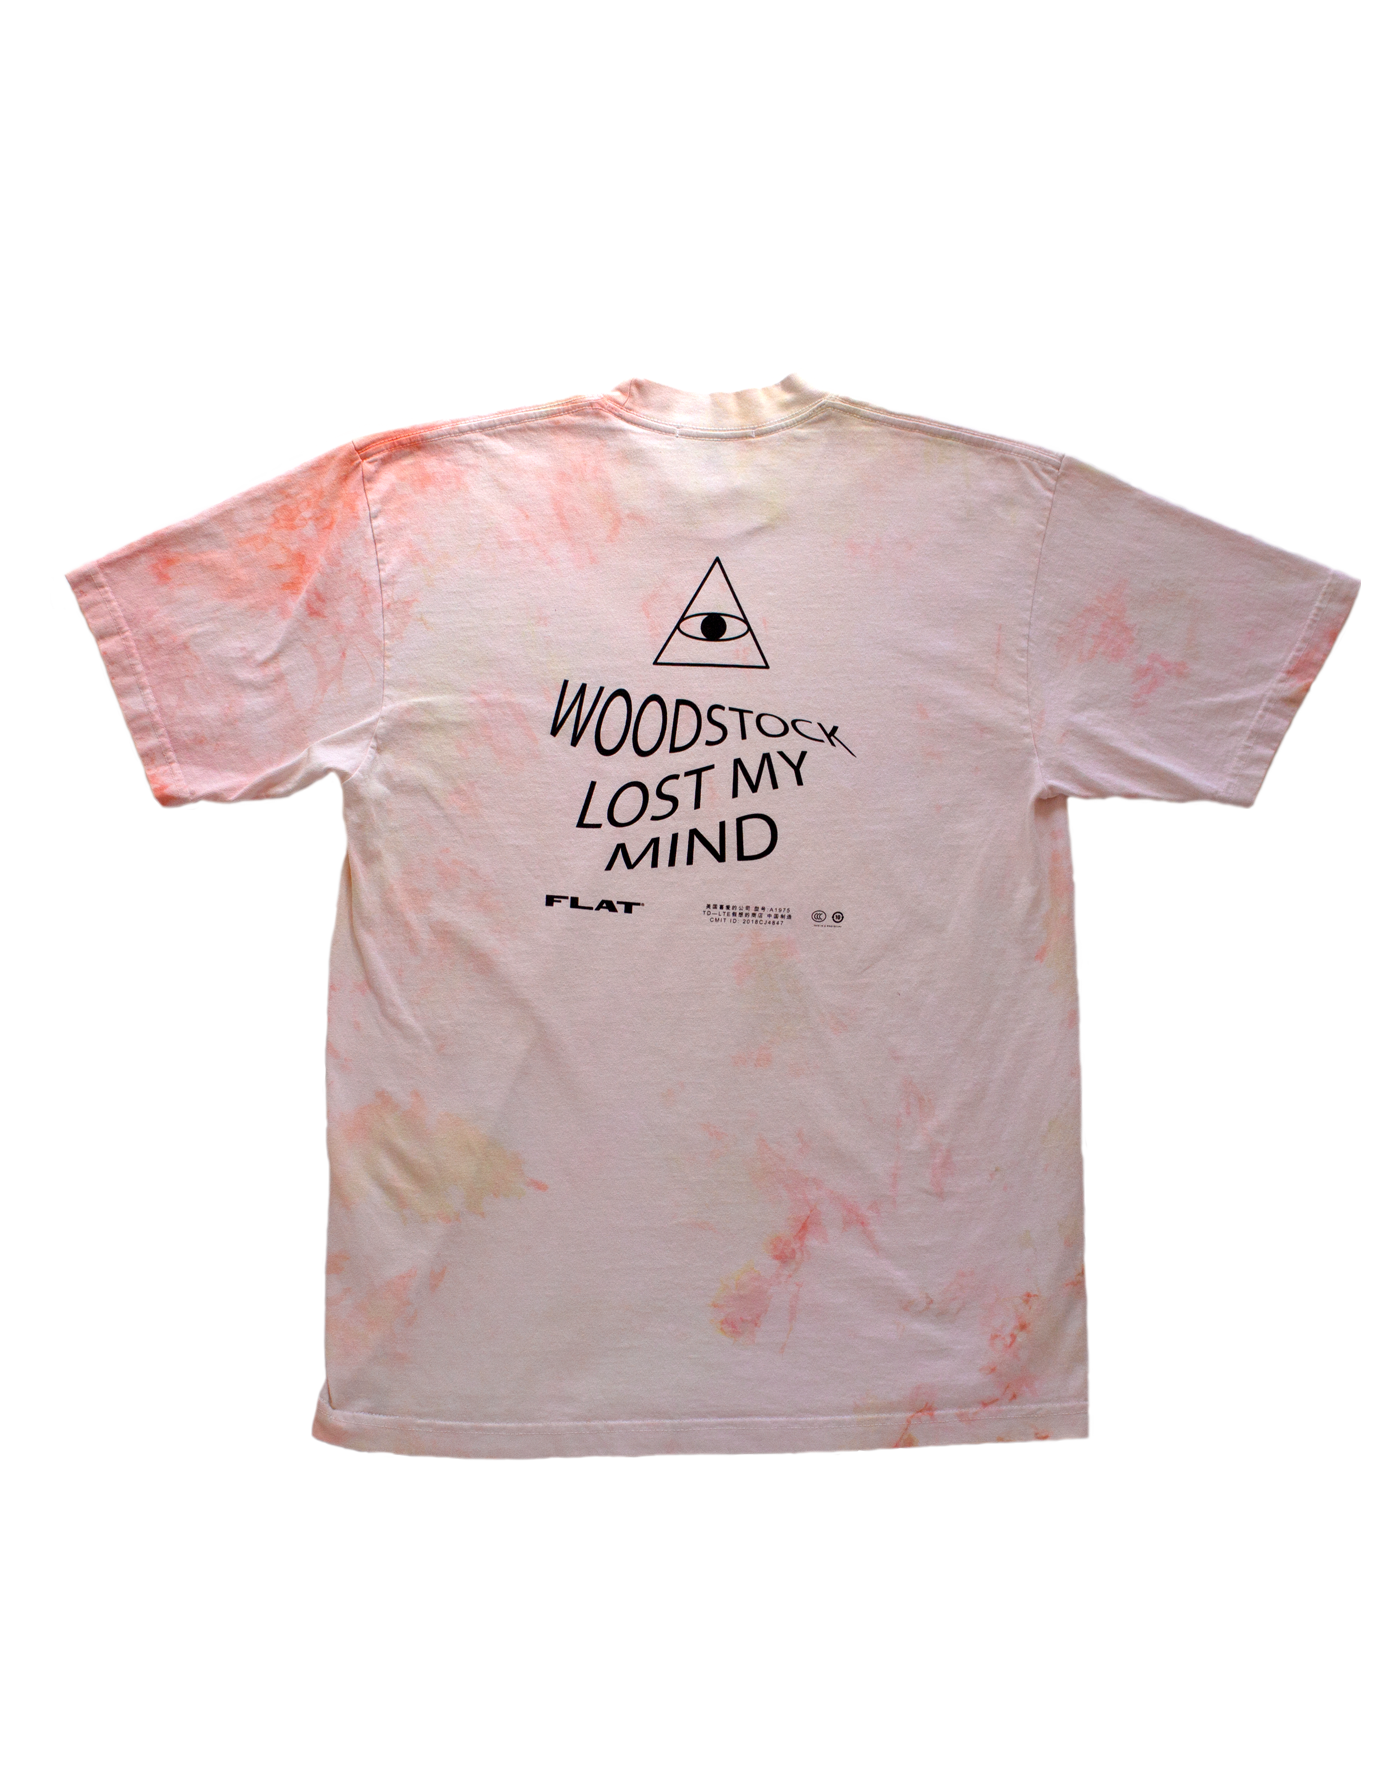 Woodstock Lost My Mind Tee Two